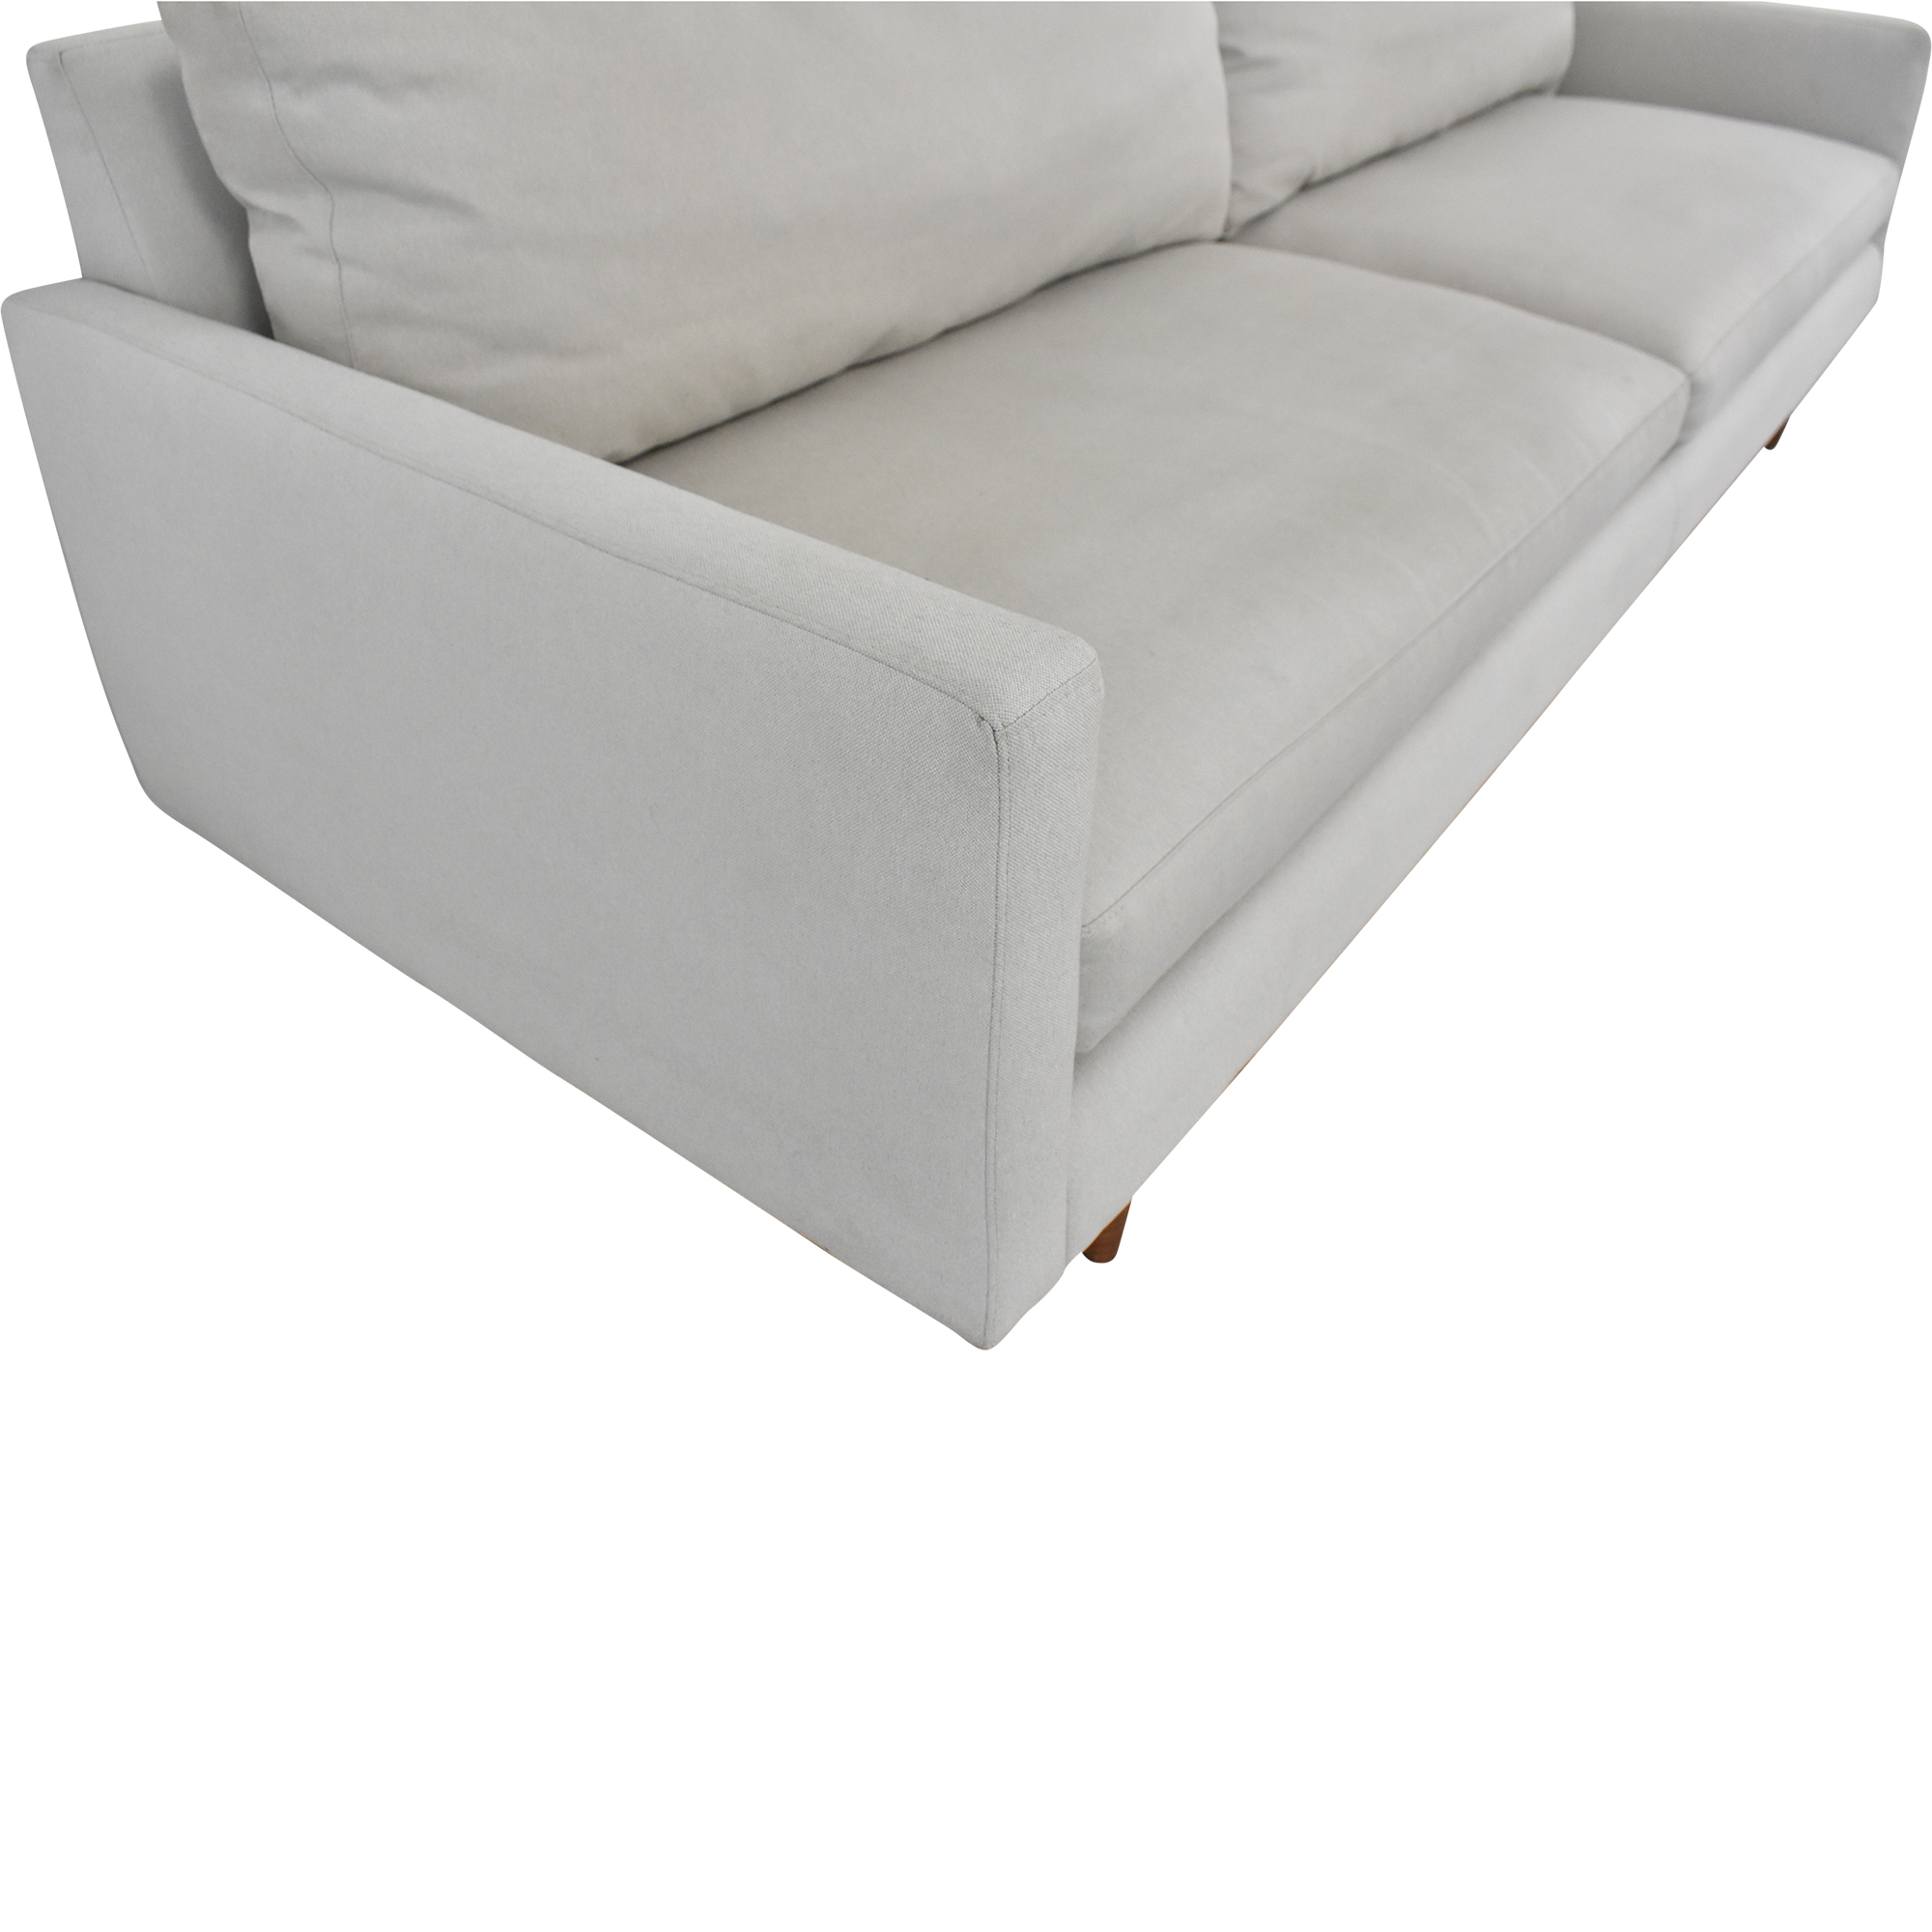 Room & Board Room & Board Jesper Sofa for sale